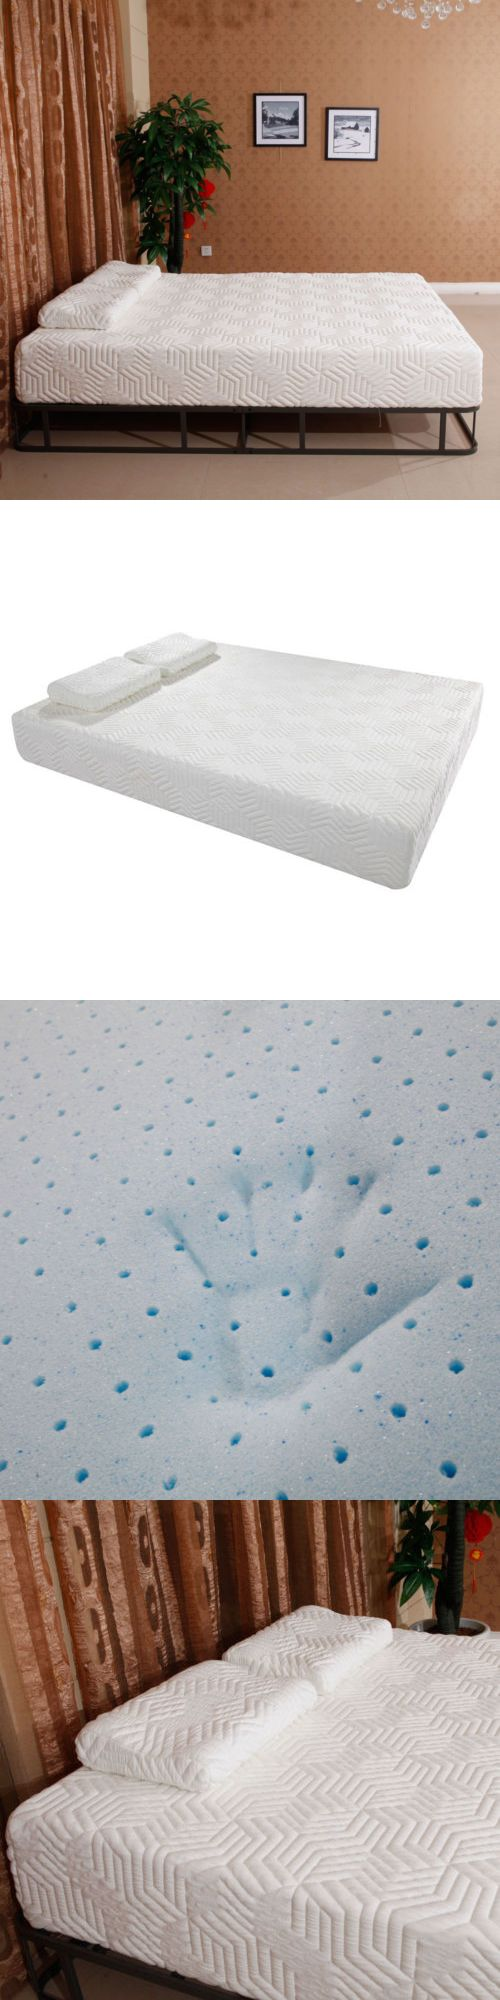 Bedding: 10 Inch Queen Size Traditional Firm Memory Foam Mattress 2 Free Pillows + Cover -> BUY IT NOW ONLY: $199.99 on eBay!